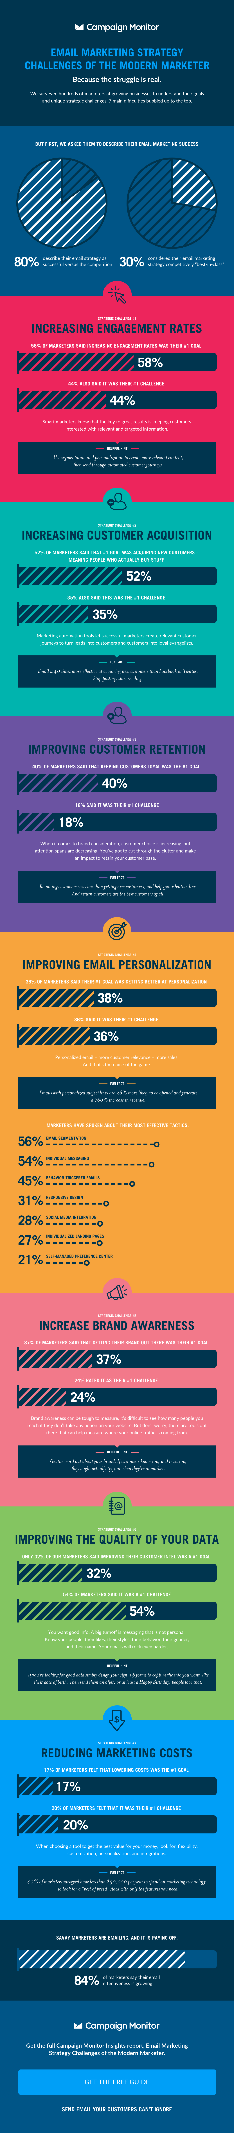 email marketing blog infographic